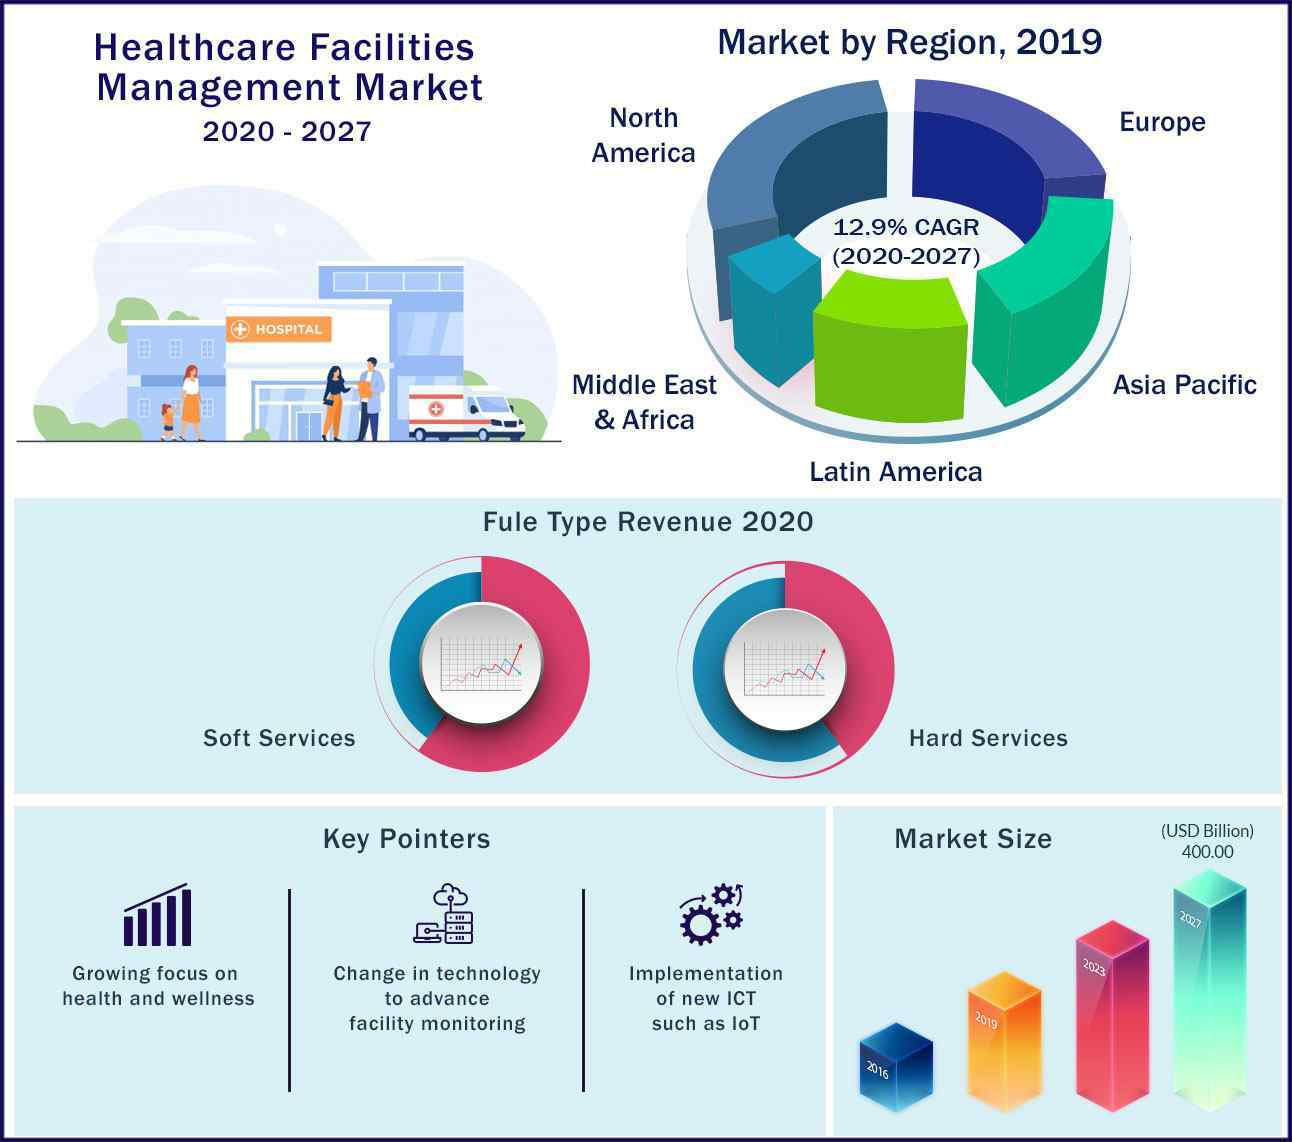 Global Healthcare Facilities Management Market 2020 to 2027